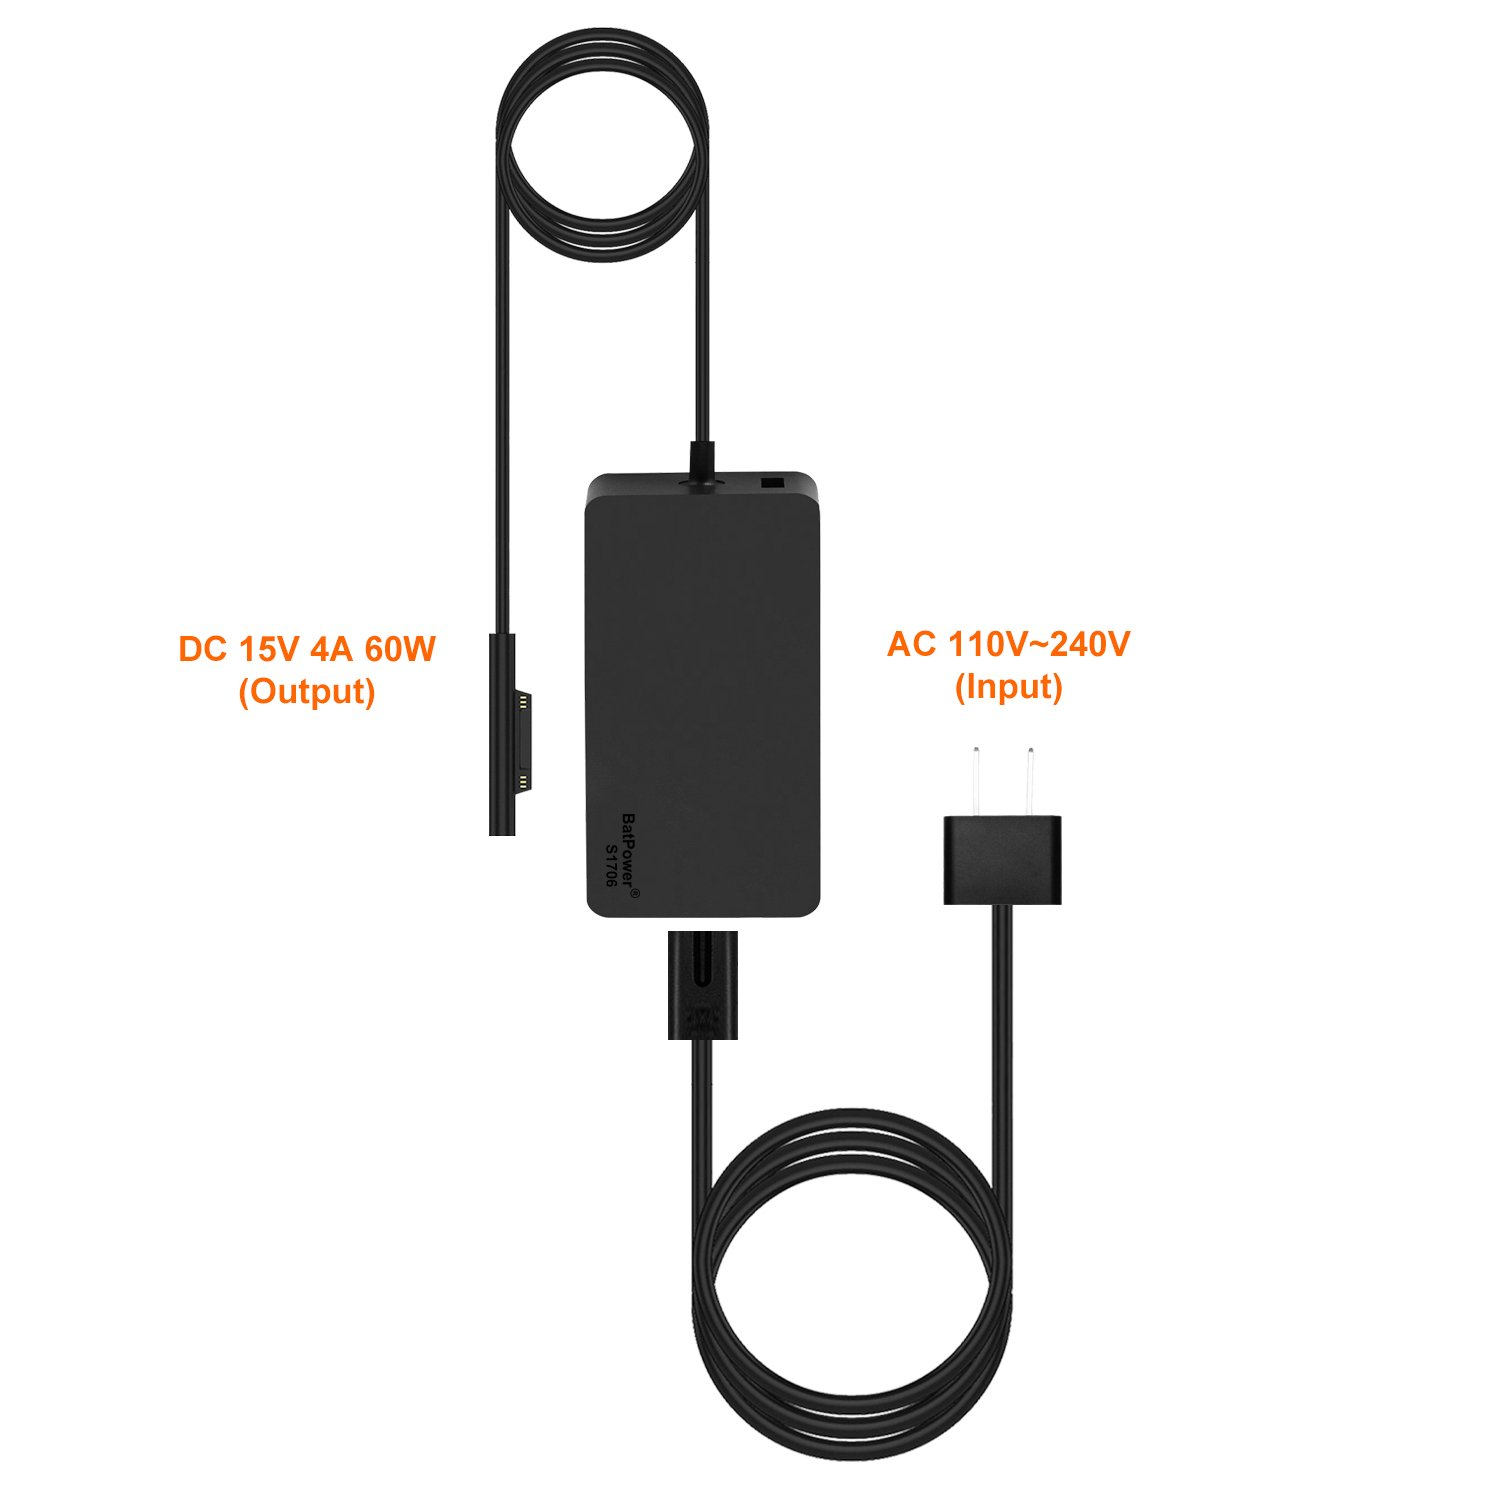 Batpower 15V 4A 65W Charger for Surface Book Surface Laptop Surface Pro 6 5 4 3 Surface Laptop Go Tablet Microsoft 1706 1800 1735 1736 Adapter Power Supply Cord with 5V USB Port US Extension Cord